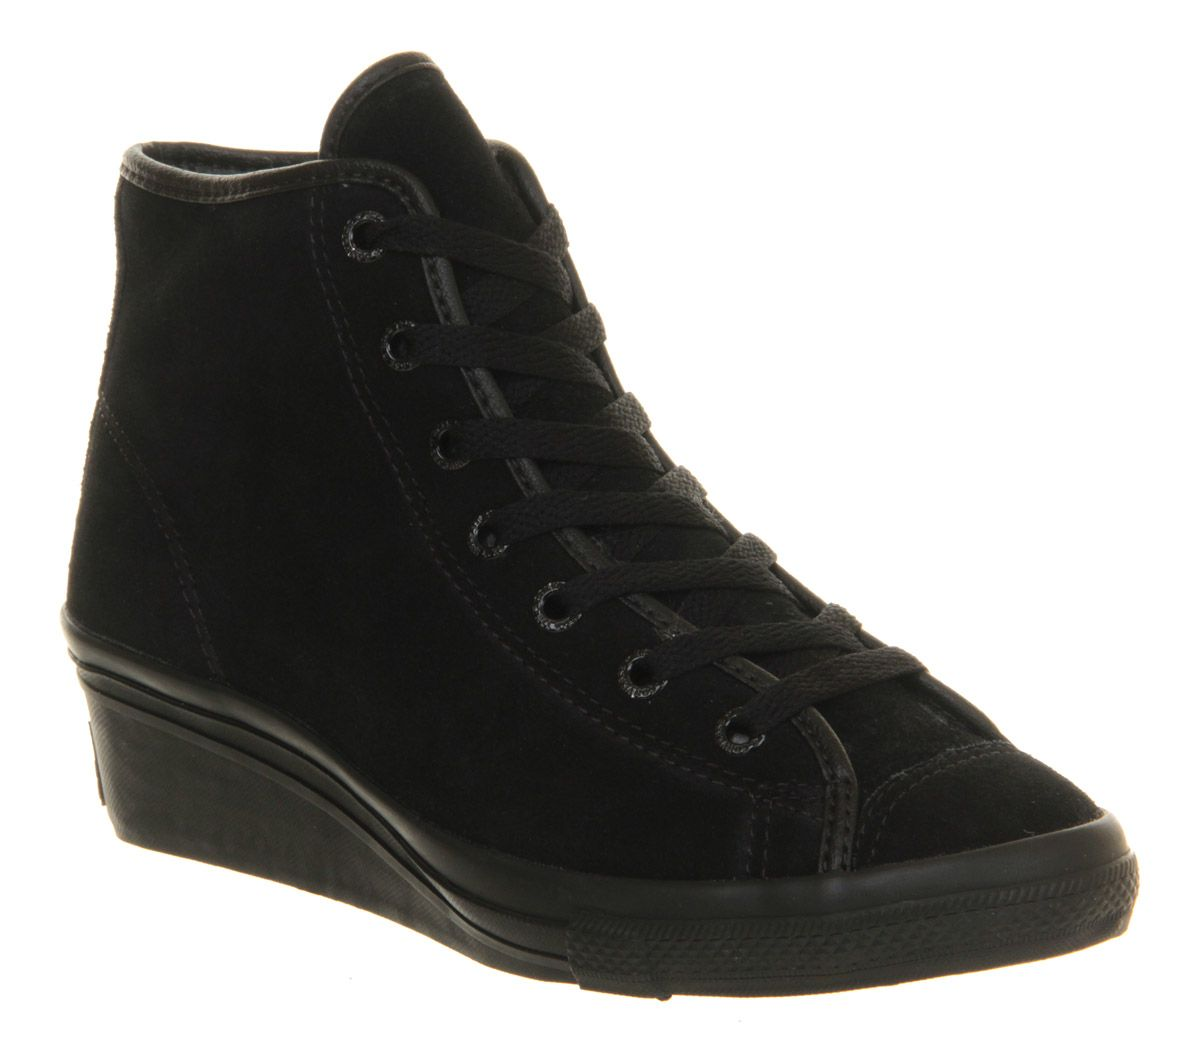 979d7941121b Converse All Star Hi-ness Black Mono Shearling Exclusive - Hers trainers